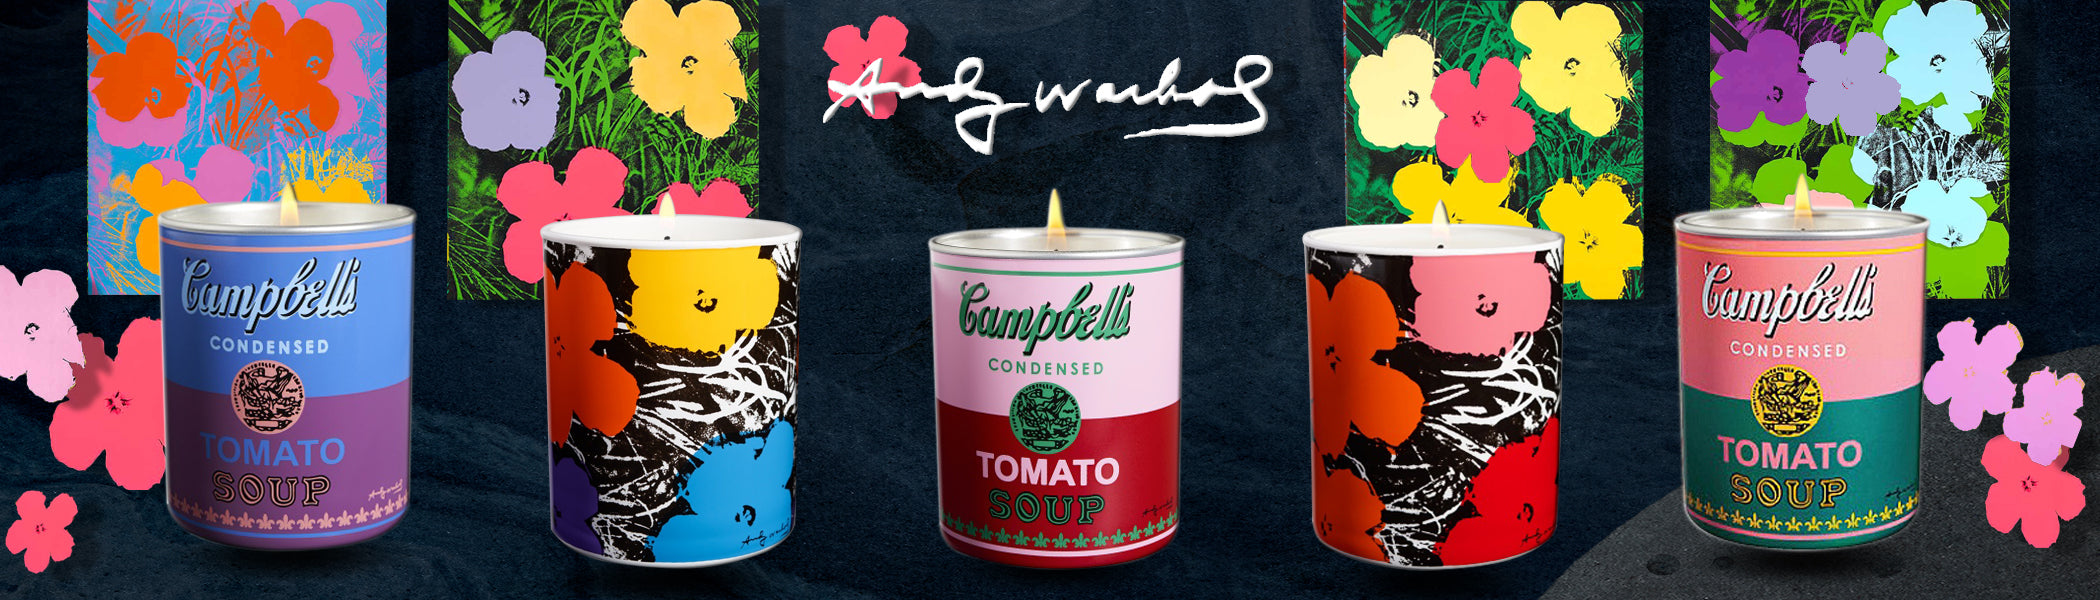 Andy Warhol Candles Collection | Neverabore.com